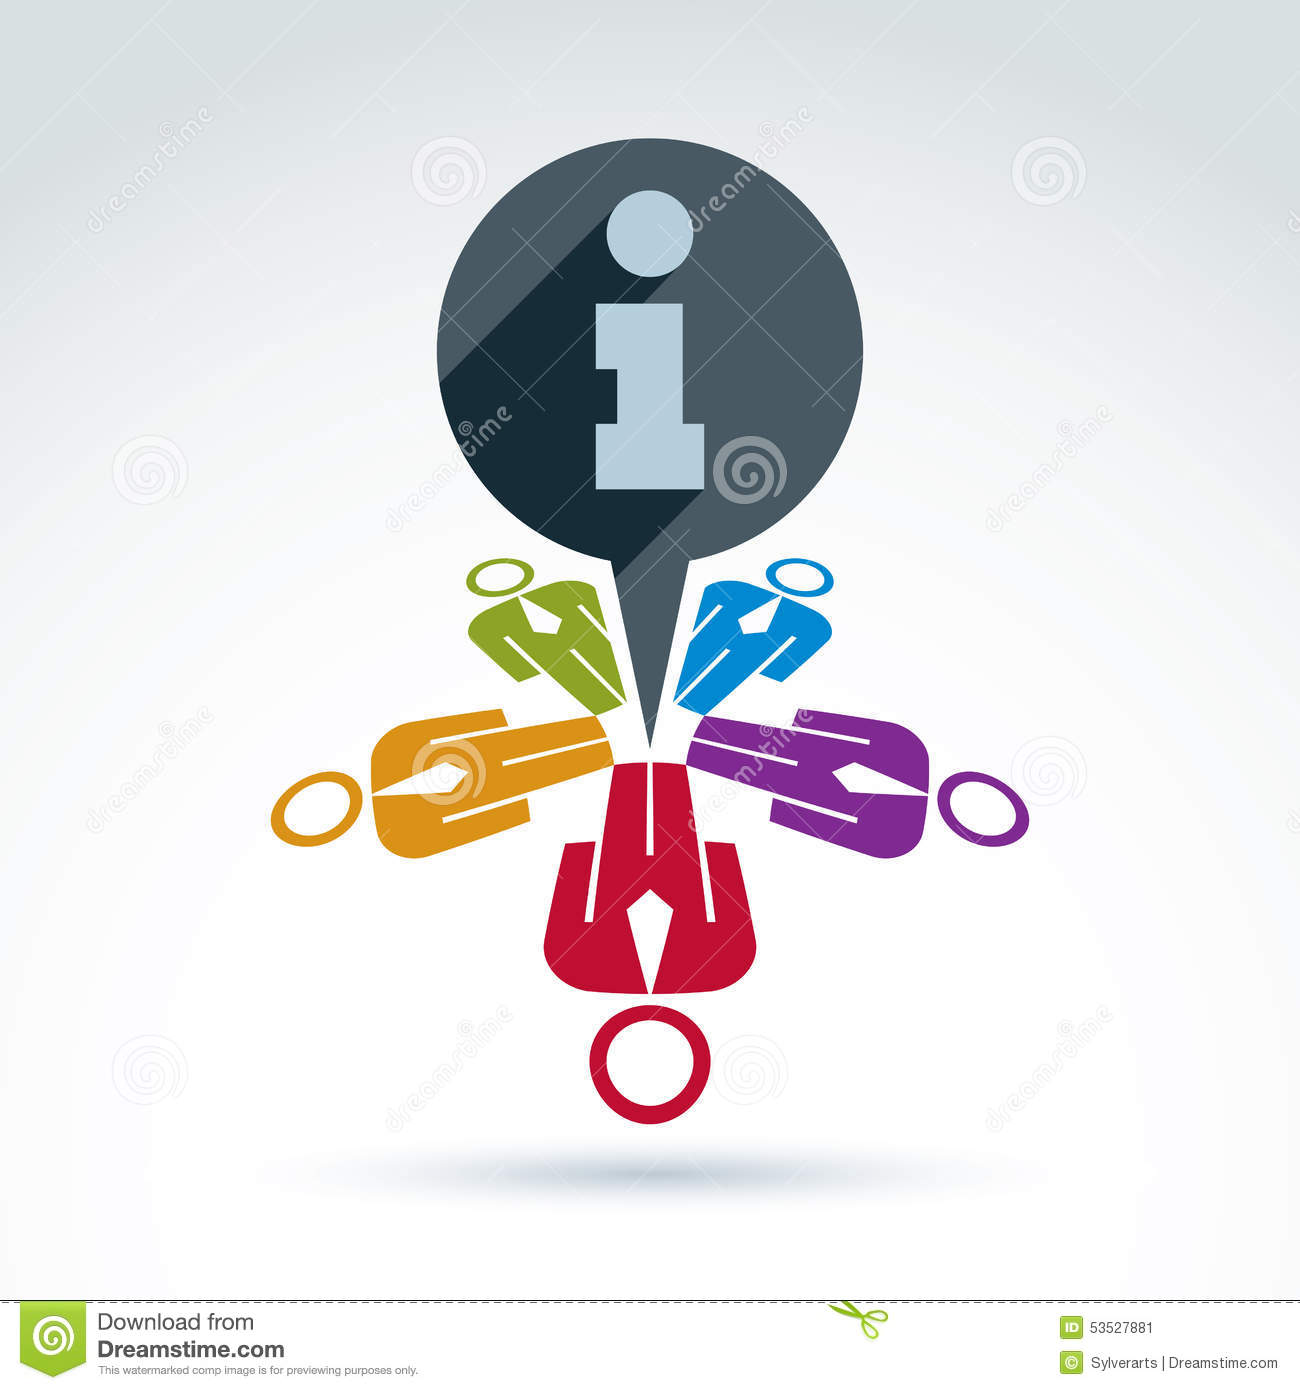 What Does A Circuit Look Like On An Op together with Wall Mounted Speakers as well All Inclusive Clip Art also Great Barrier Reef Fish Clip Art moreover International Information Symbol. on design floor plan symbol for audio